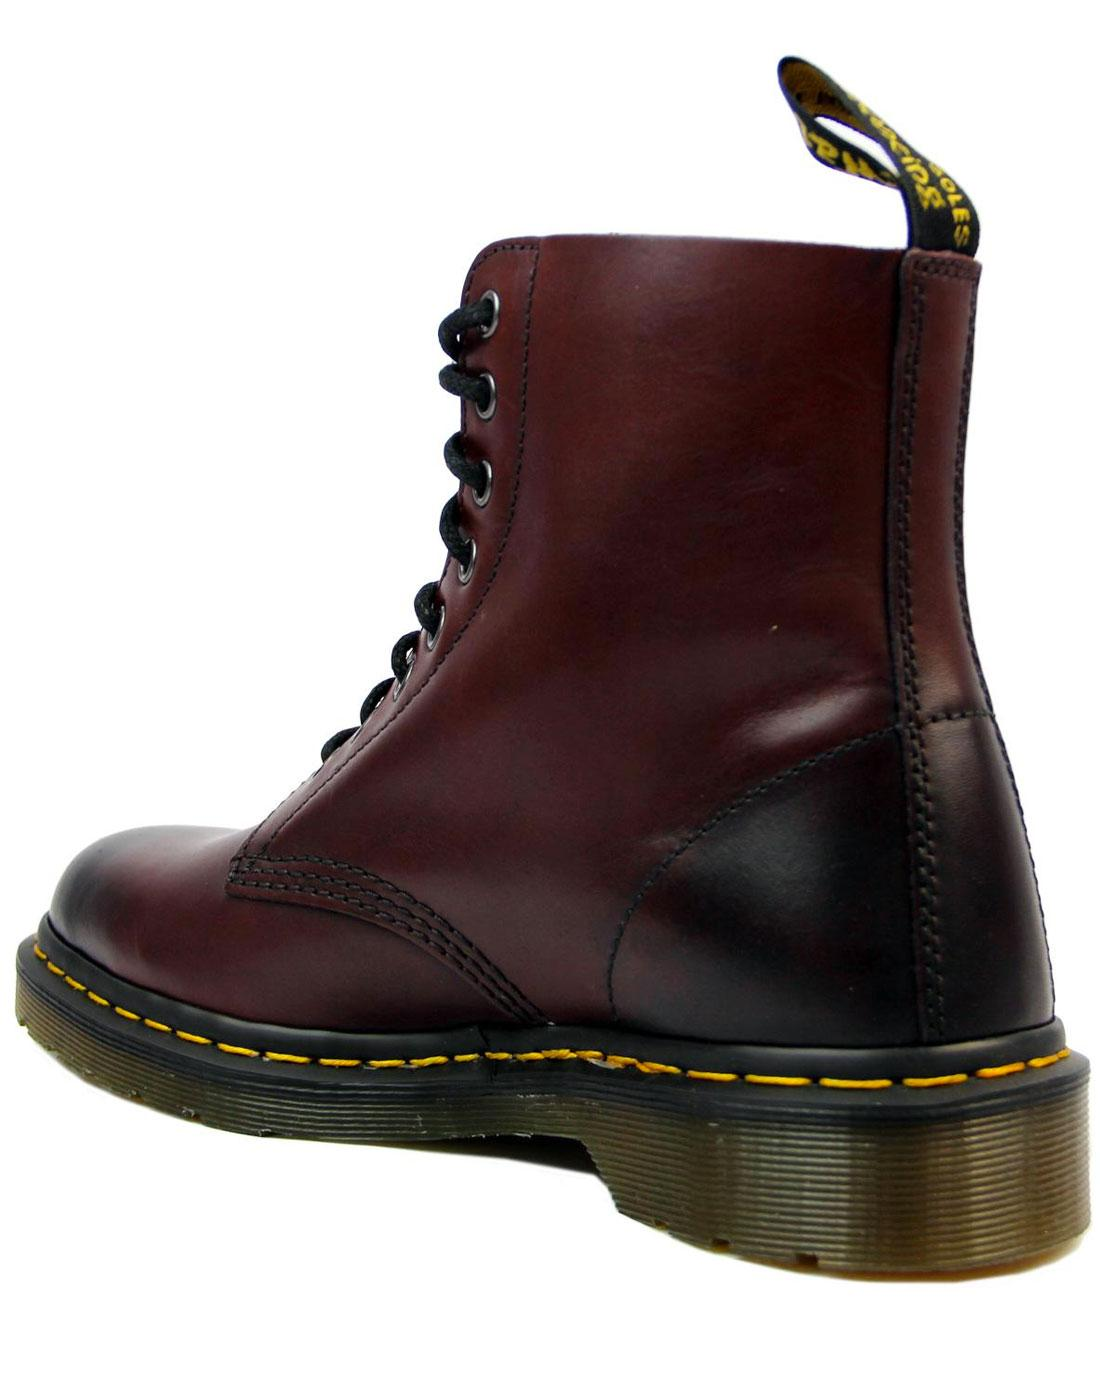 Dr. Martens 1460 Pascal Antique Temperley Leather Depop